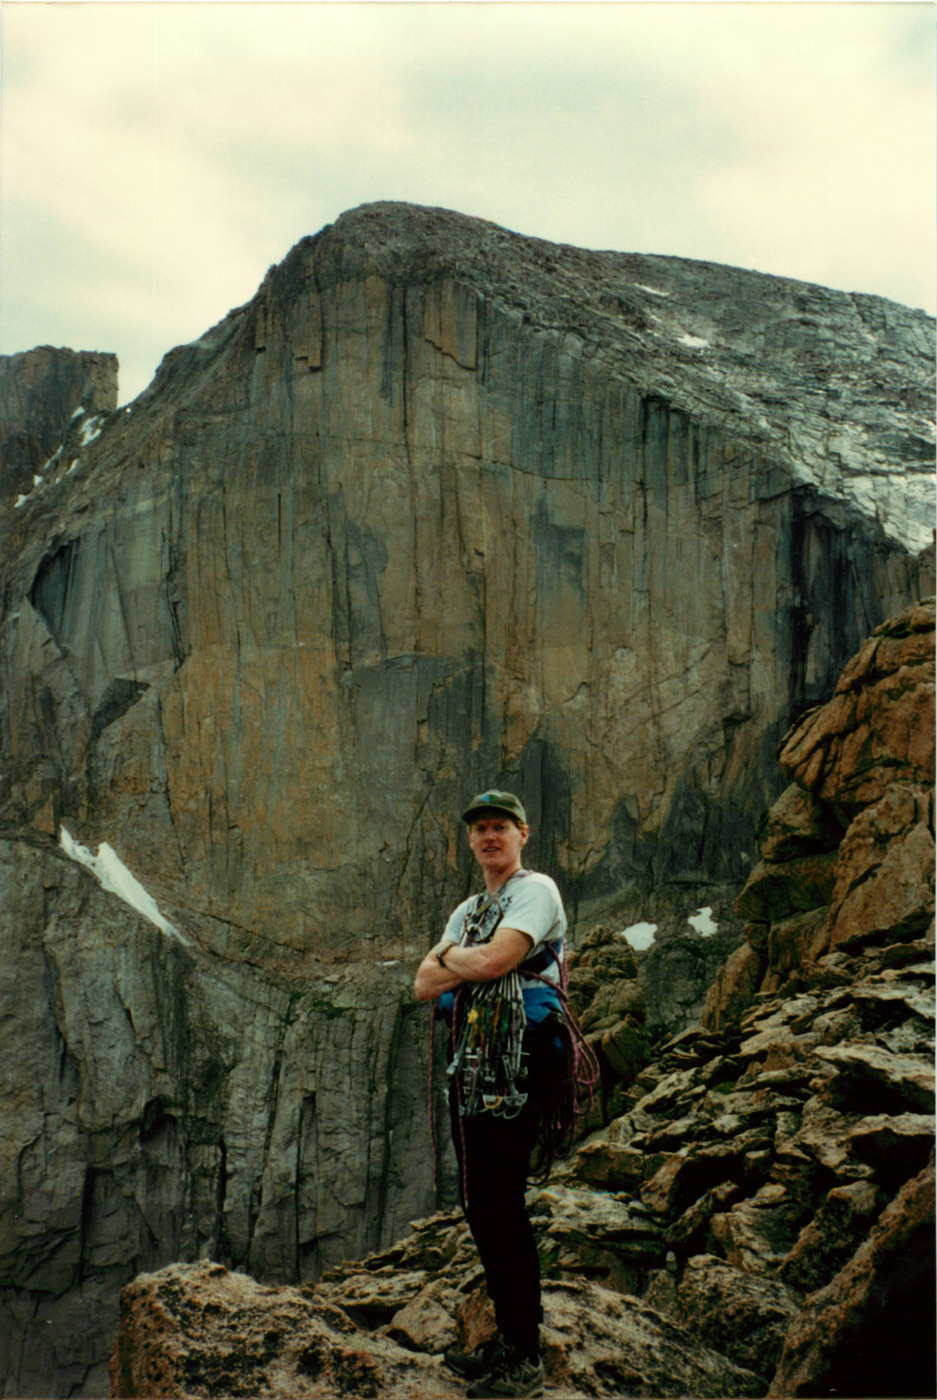 Jim Ghiselli before the Diamond, Longs Peak, Colorado. Photo courtesy of Becky Hall.